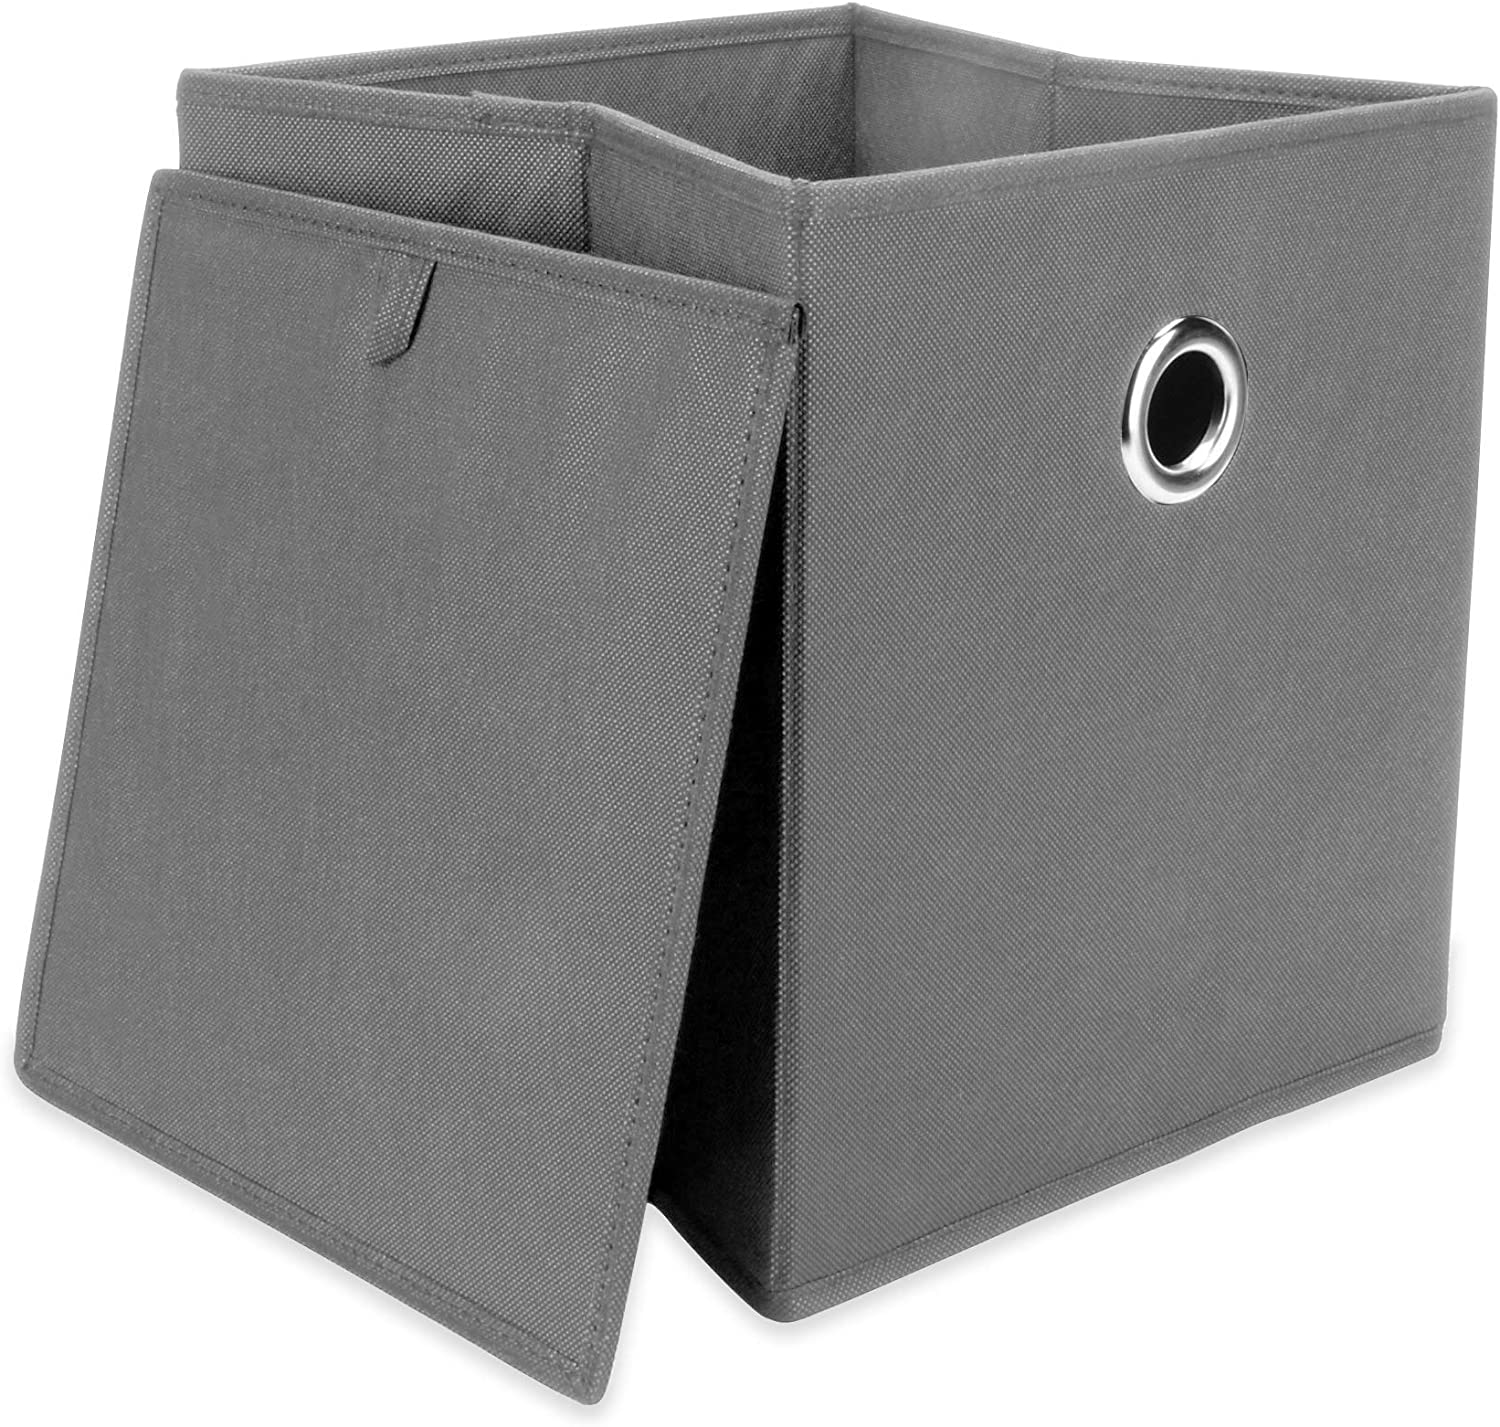 Set of 6 Collapsible Storage Boxes | Foldable Boxes for Bedroom & Home Storage | Fabric Organiser Baskets | Book, DVD and Clothes Storage | M&W (Grey)